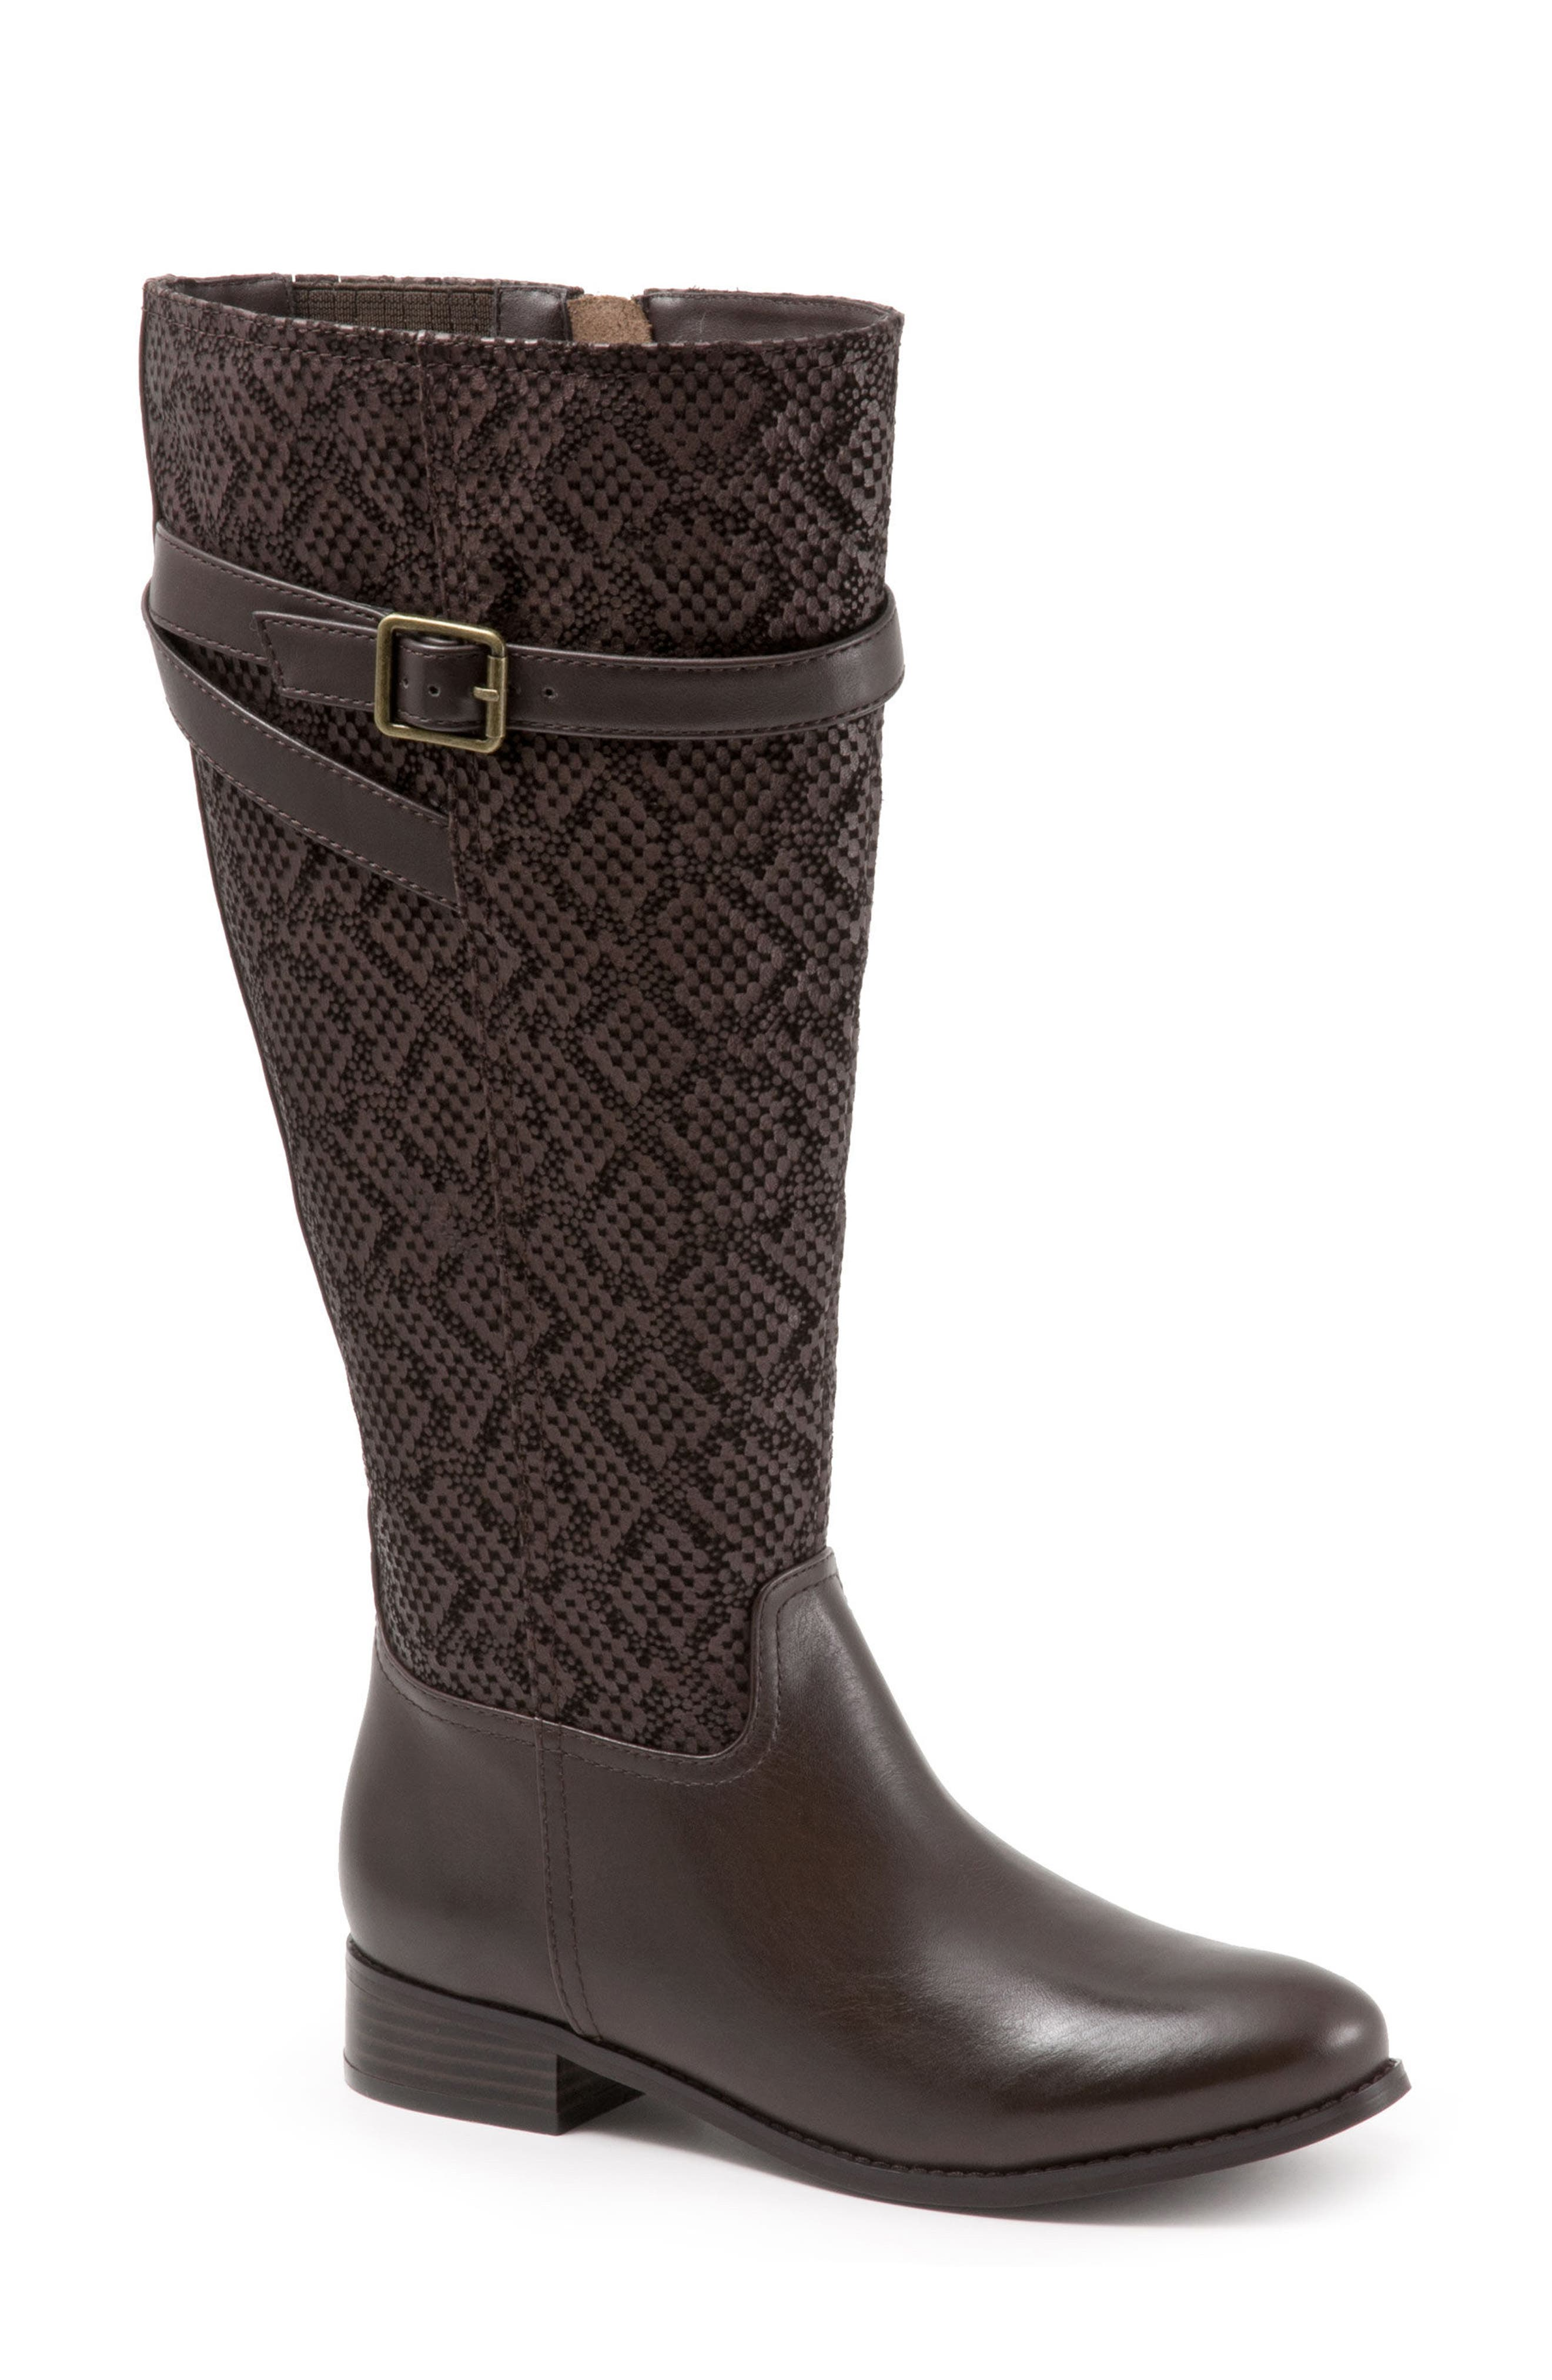 Trotters Lyra Tall Boot, Wide Calf- Brown